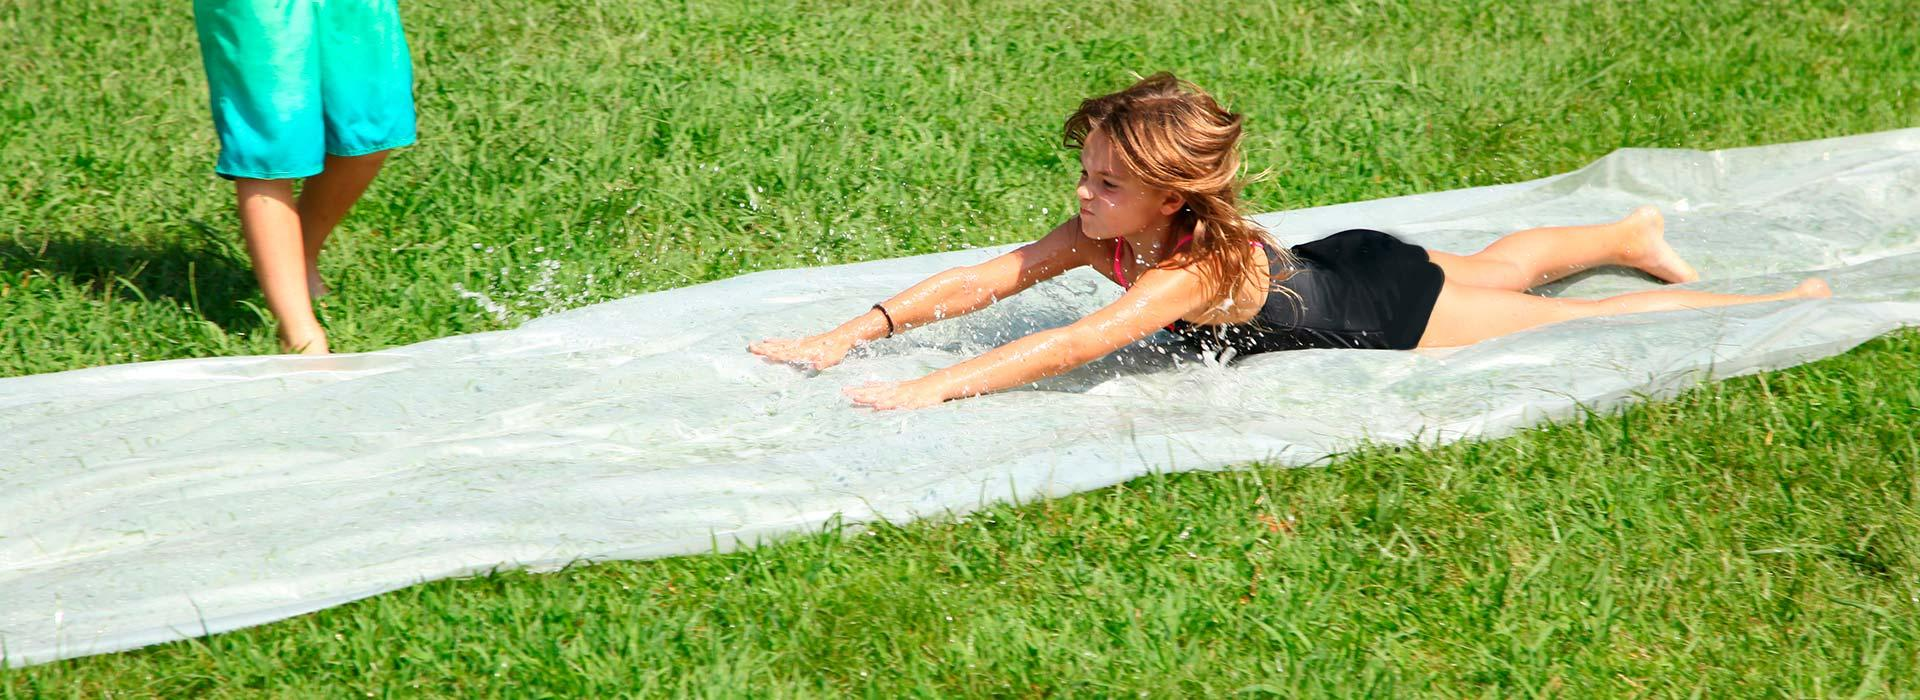 a girl running down a slip and slide